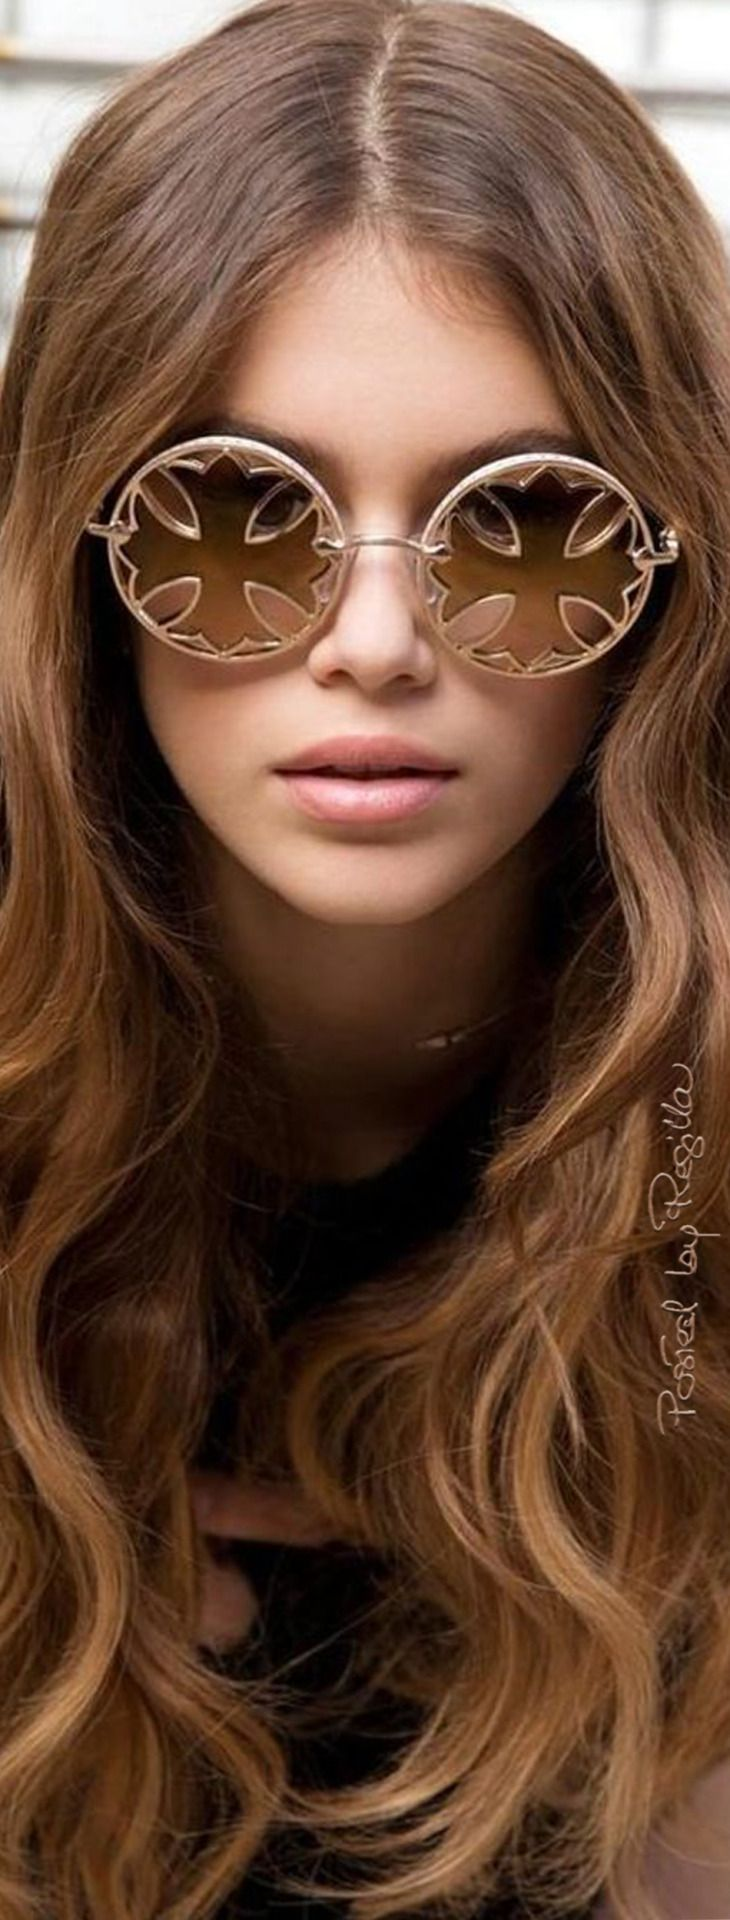 Regilla ⚜ Kaya Gerber (Cindy Crawford's daughter) wearing Chrome Hearts